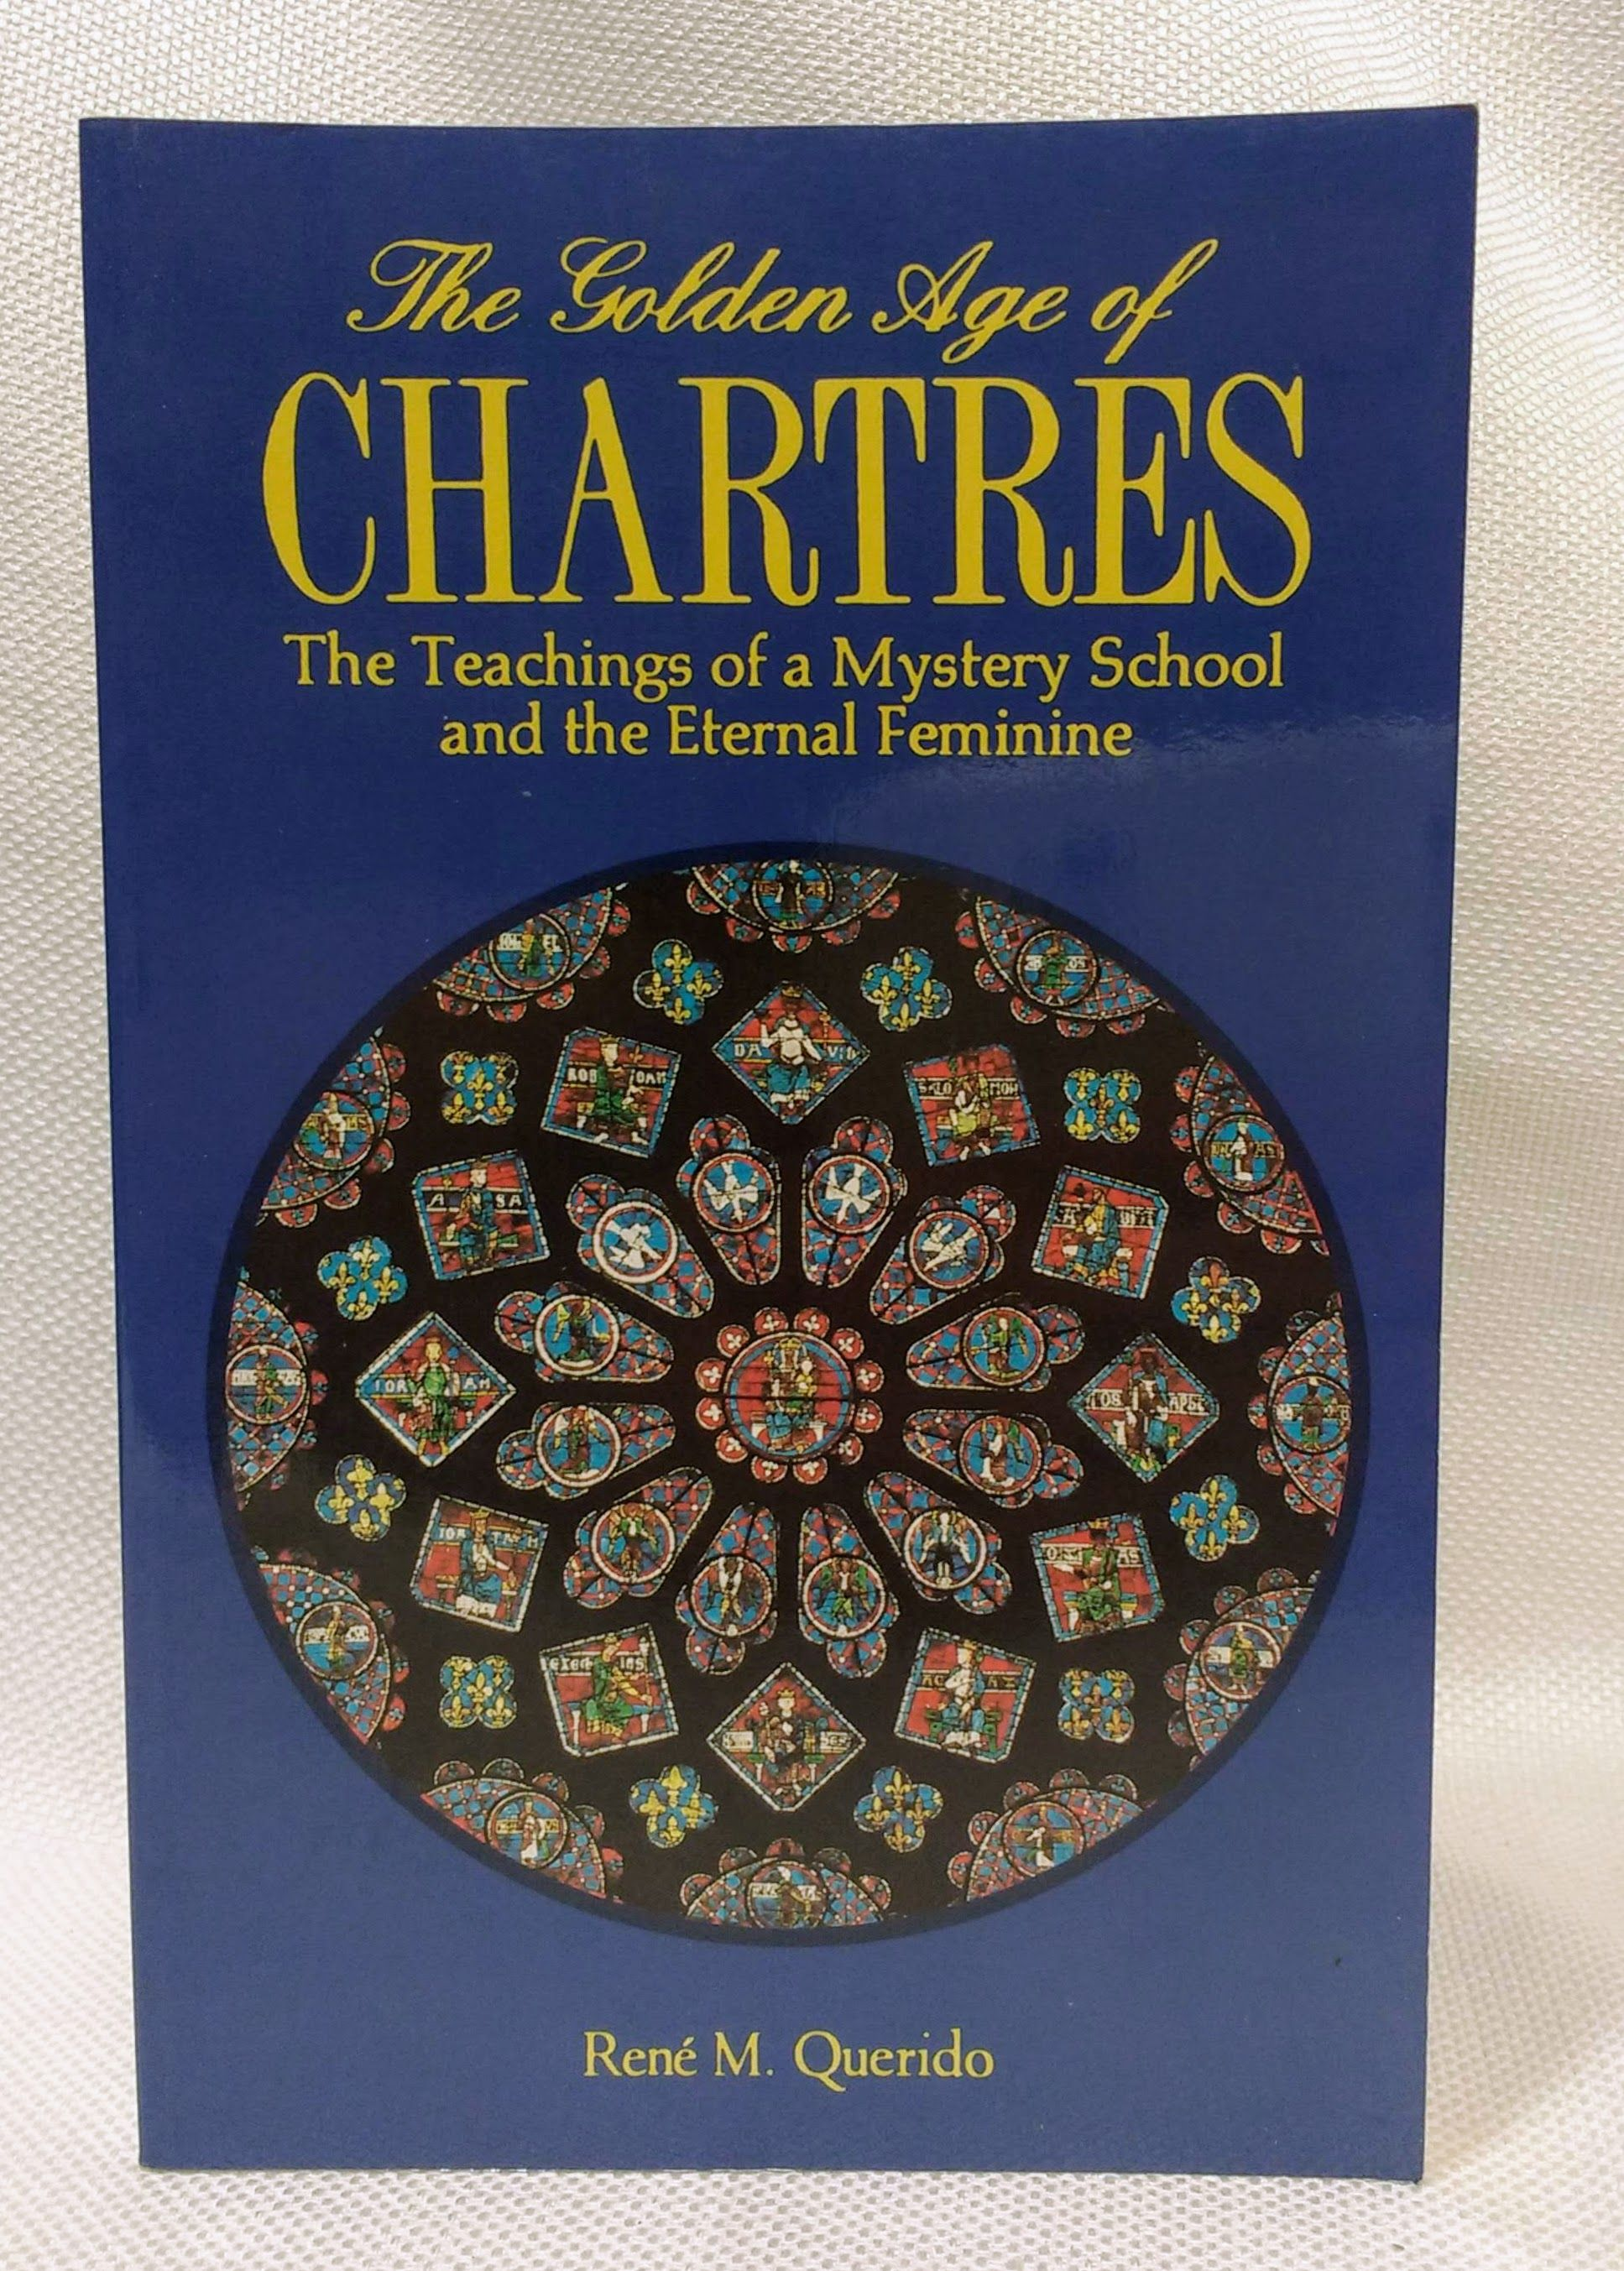 The Golden Ages of Chartres: The Teachings of a Mystery School and the Eternal Feminine, Querido, Rene? M.